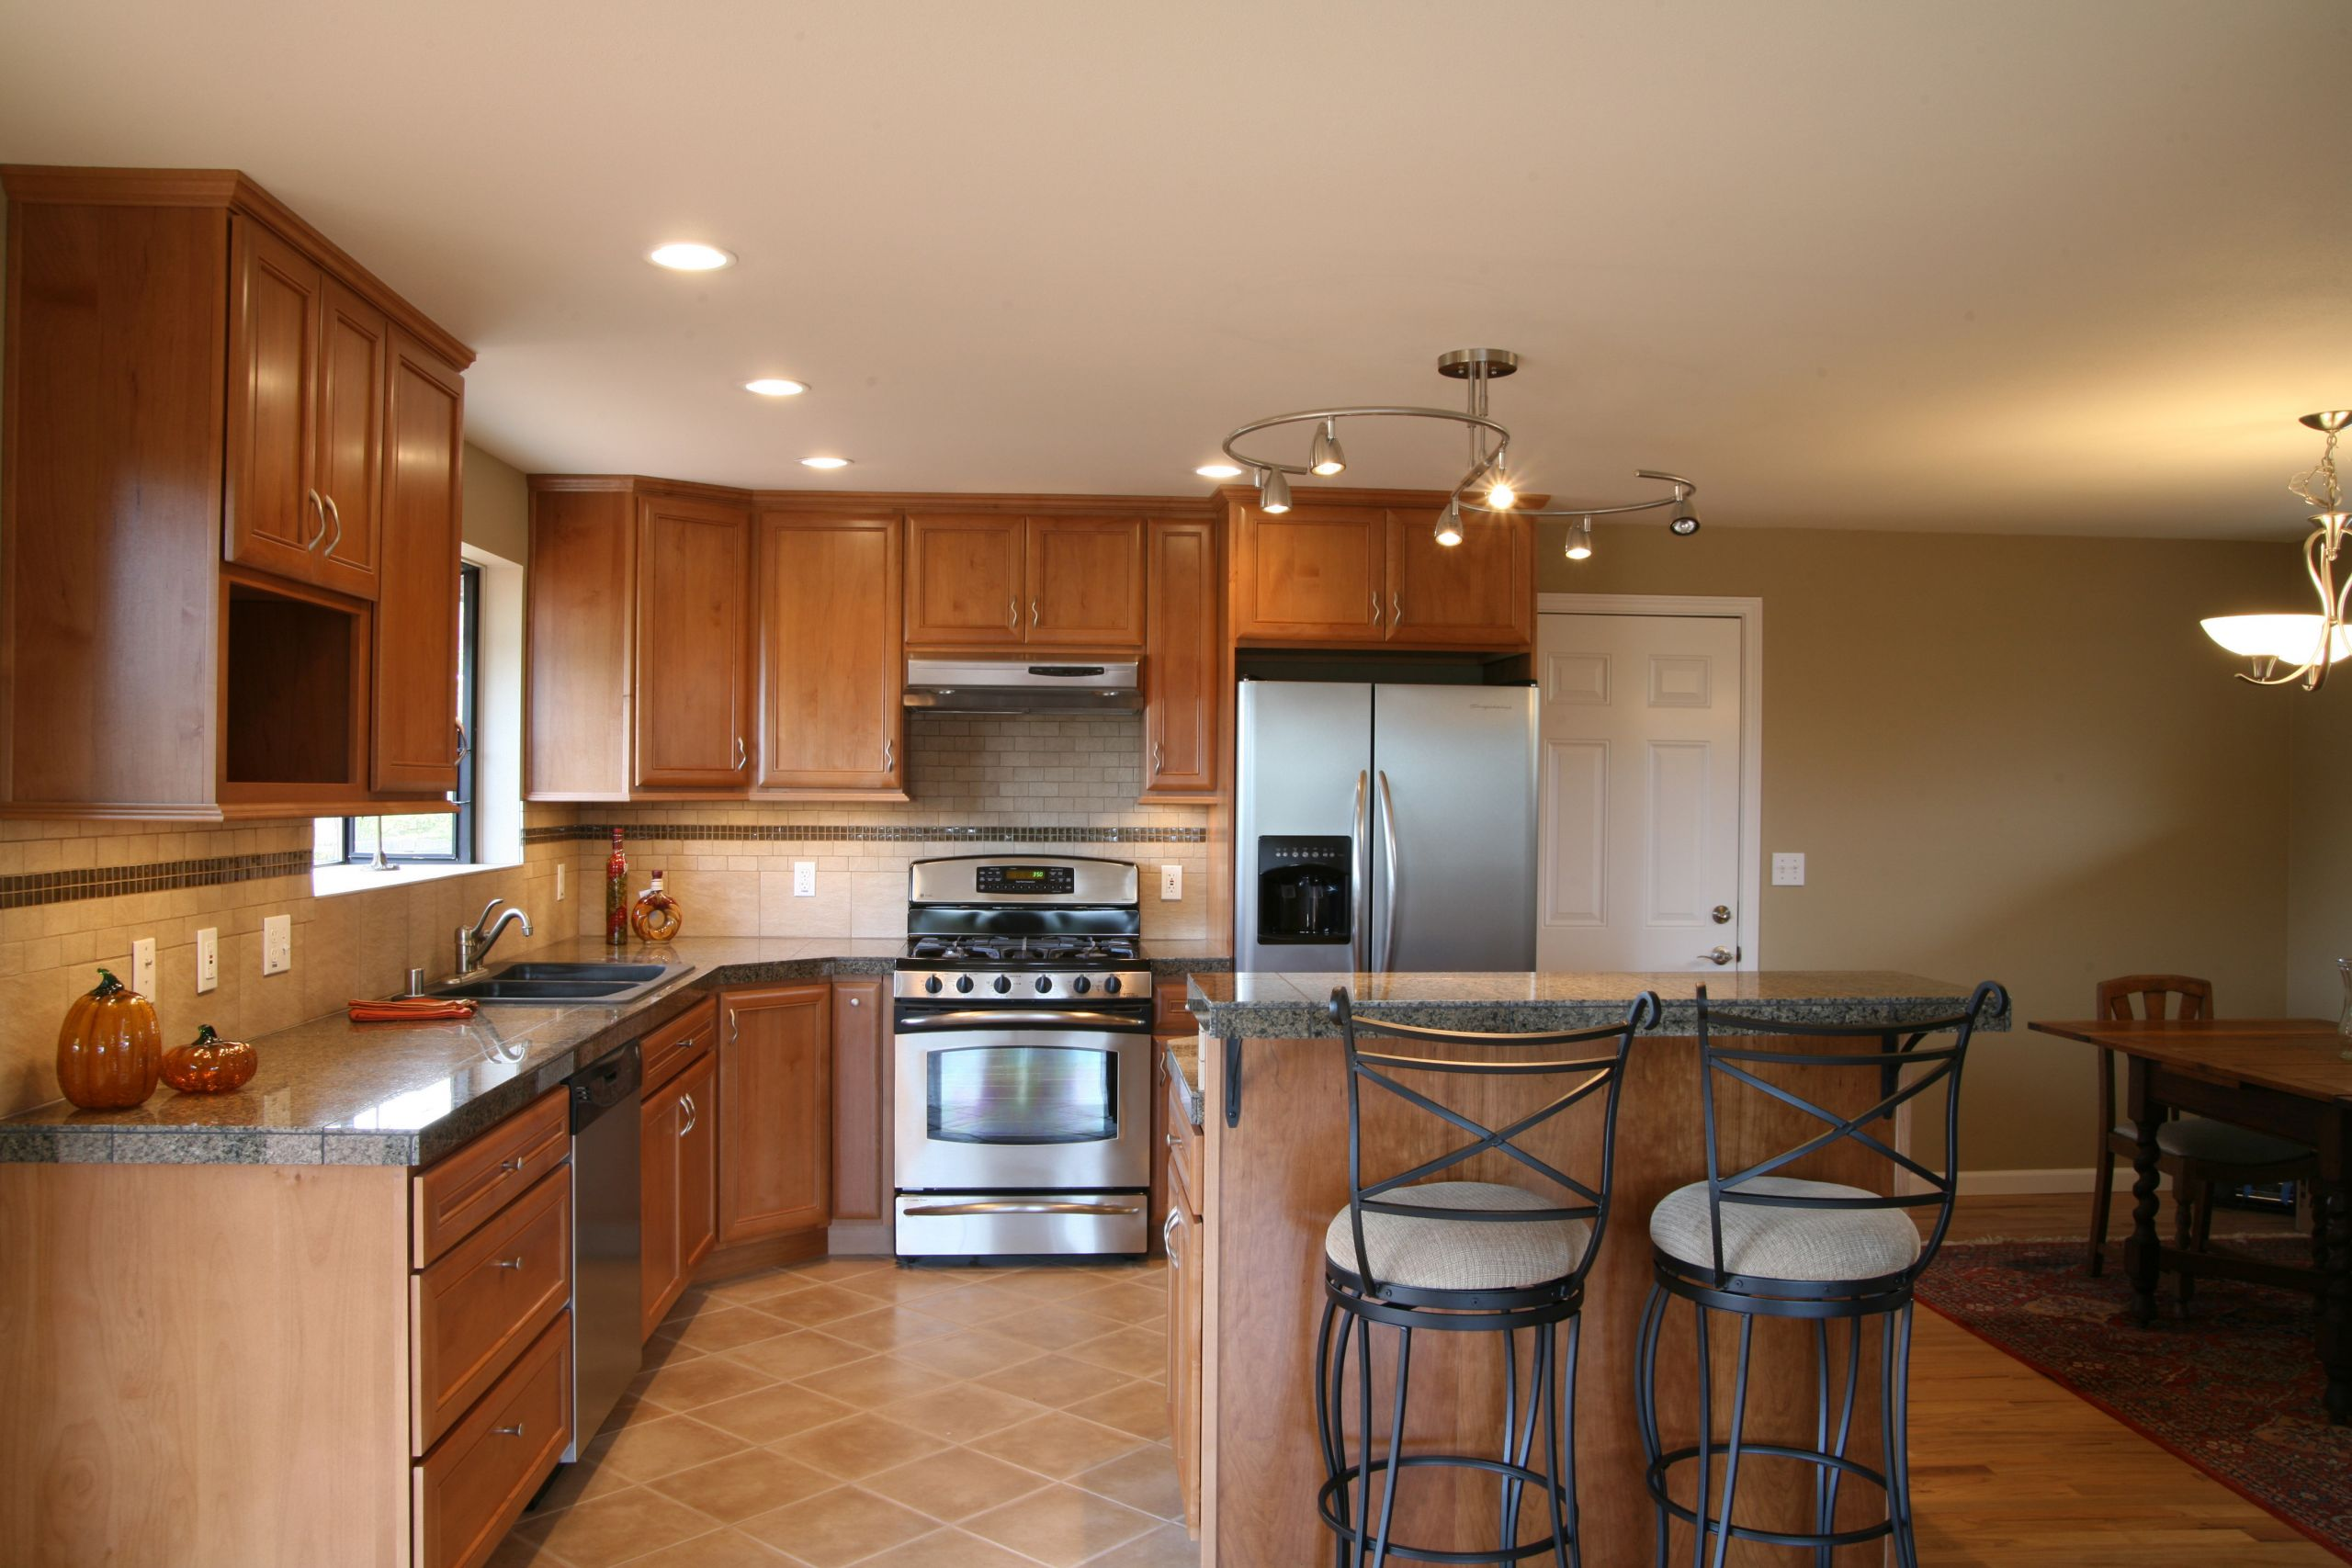 Kitchen Remodeling Images  Add value to your home with Upscale Kitchen Remodeling